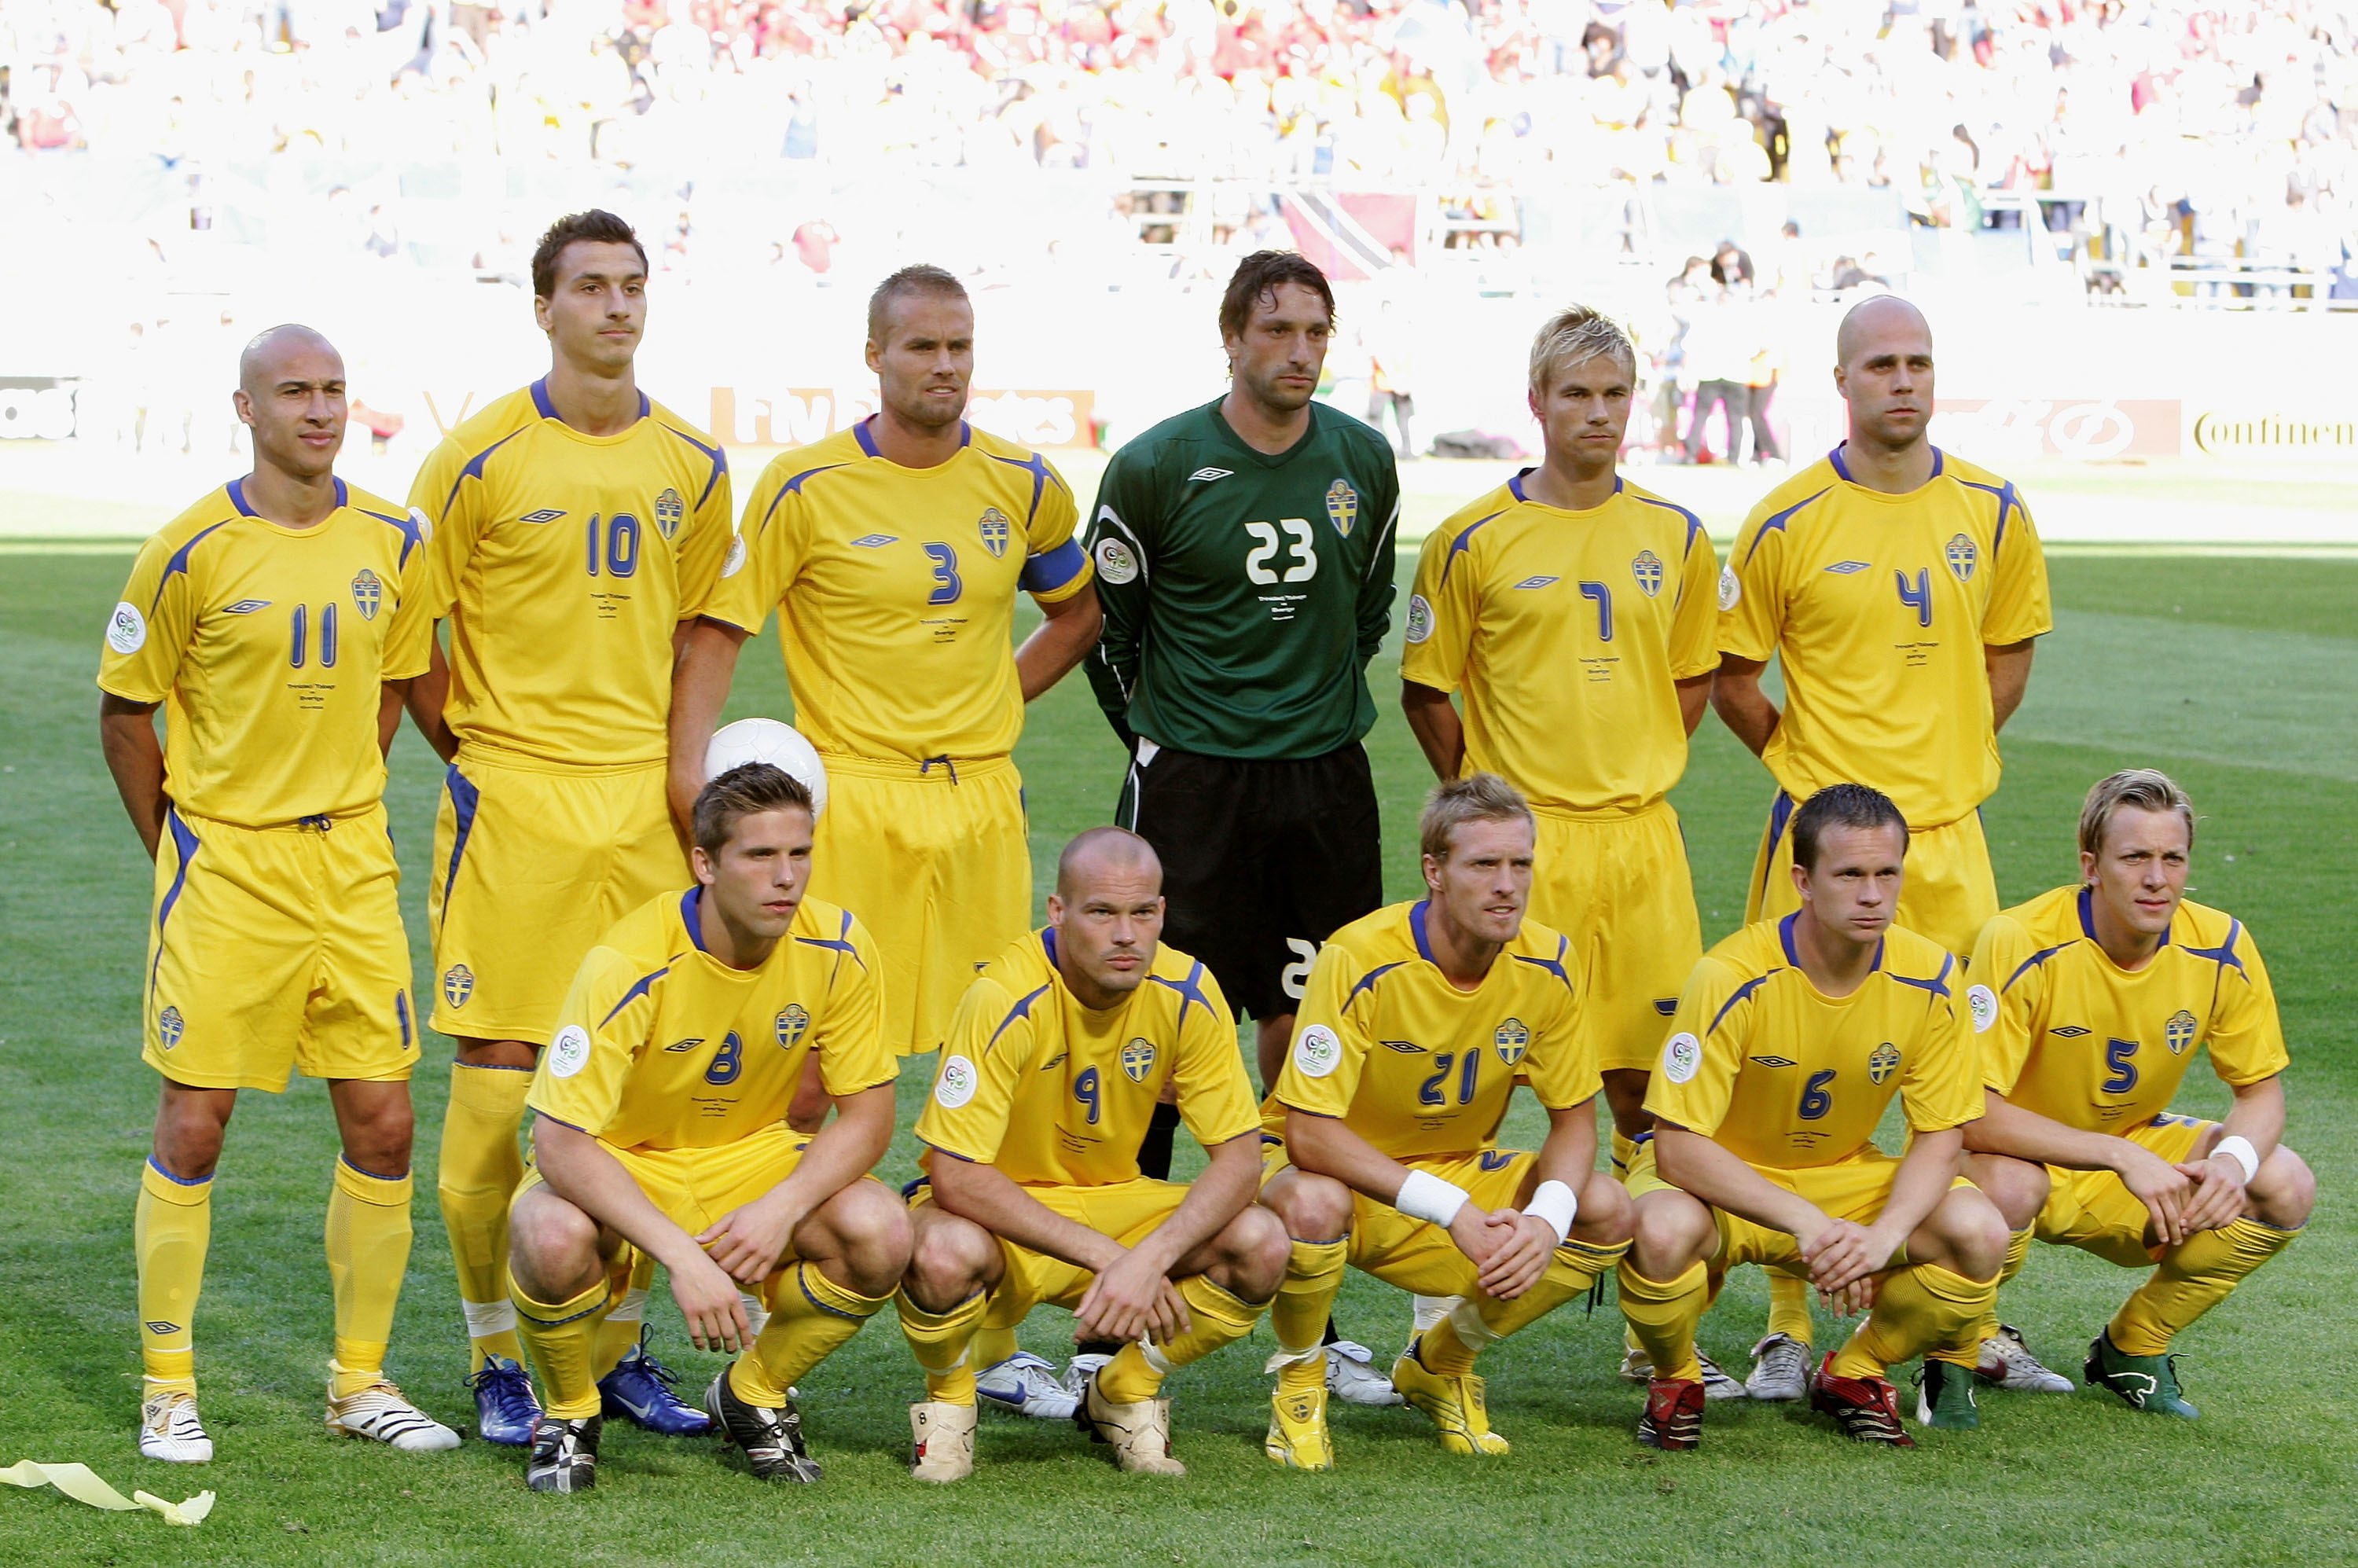 Description Swedish national football team 2006.jpg